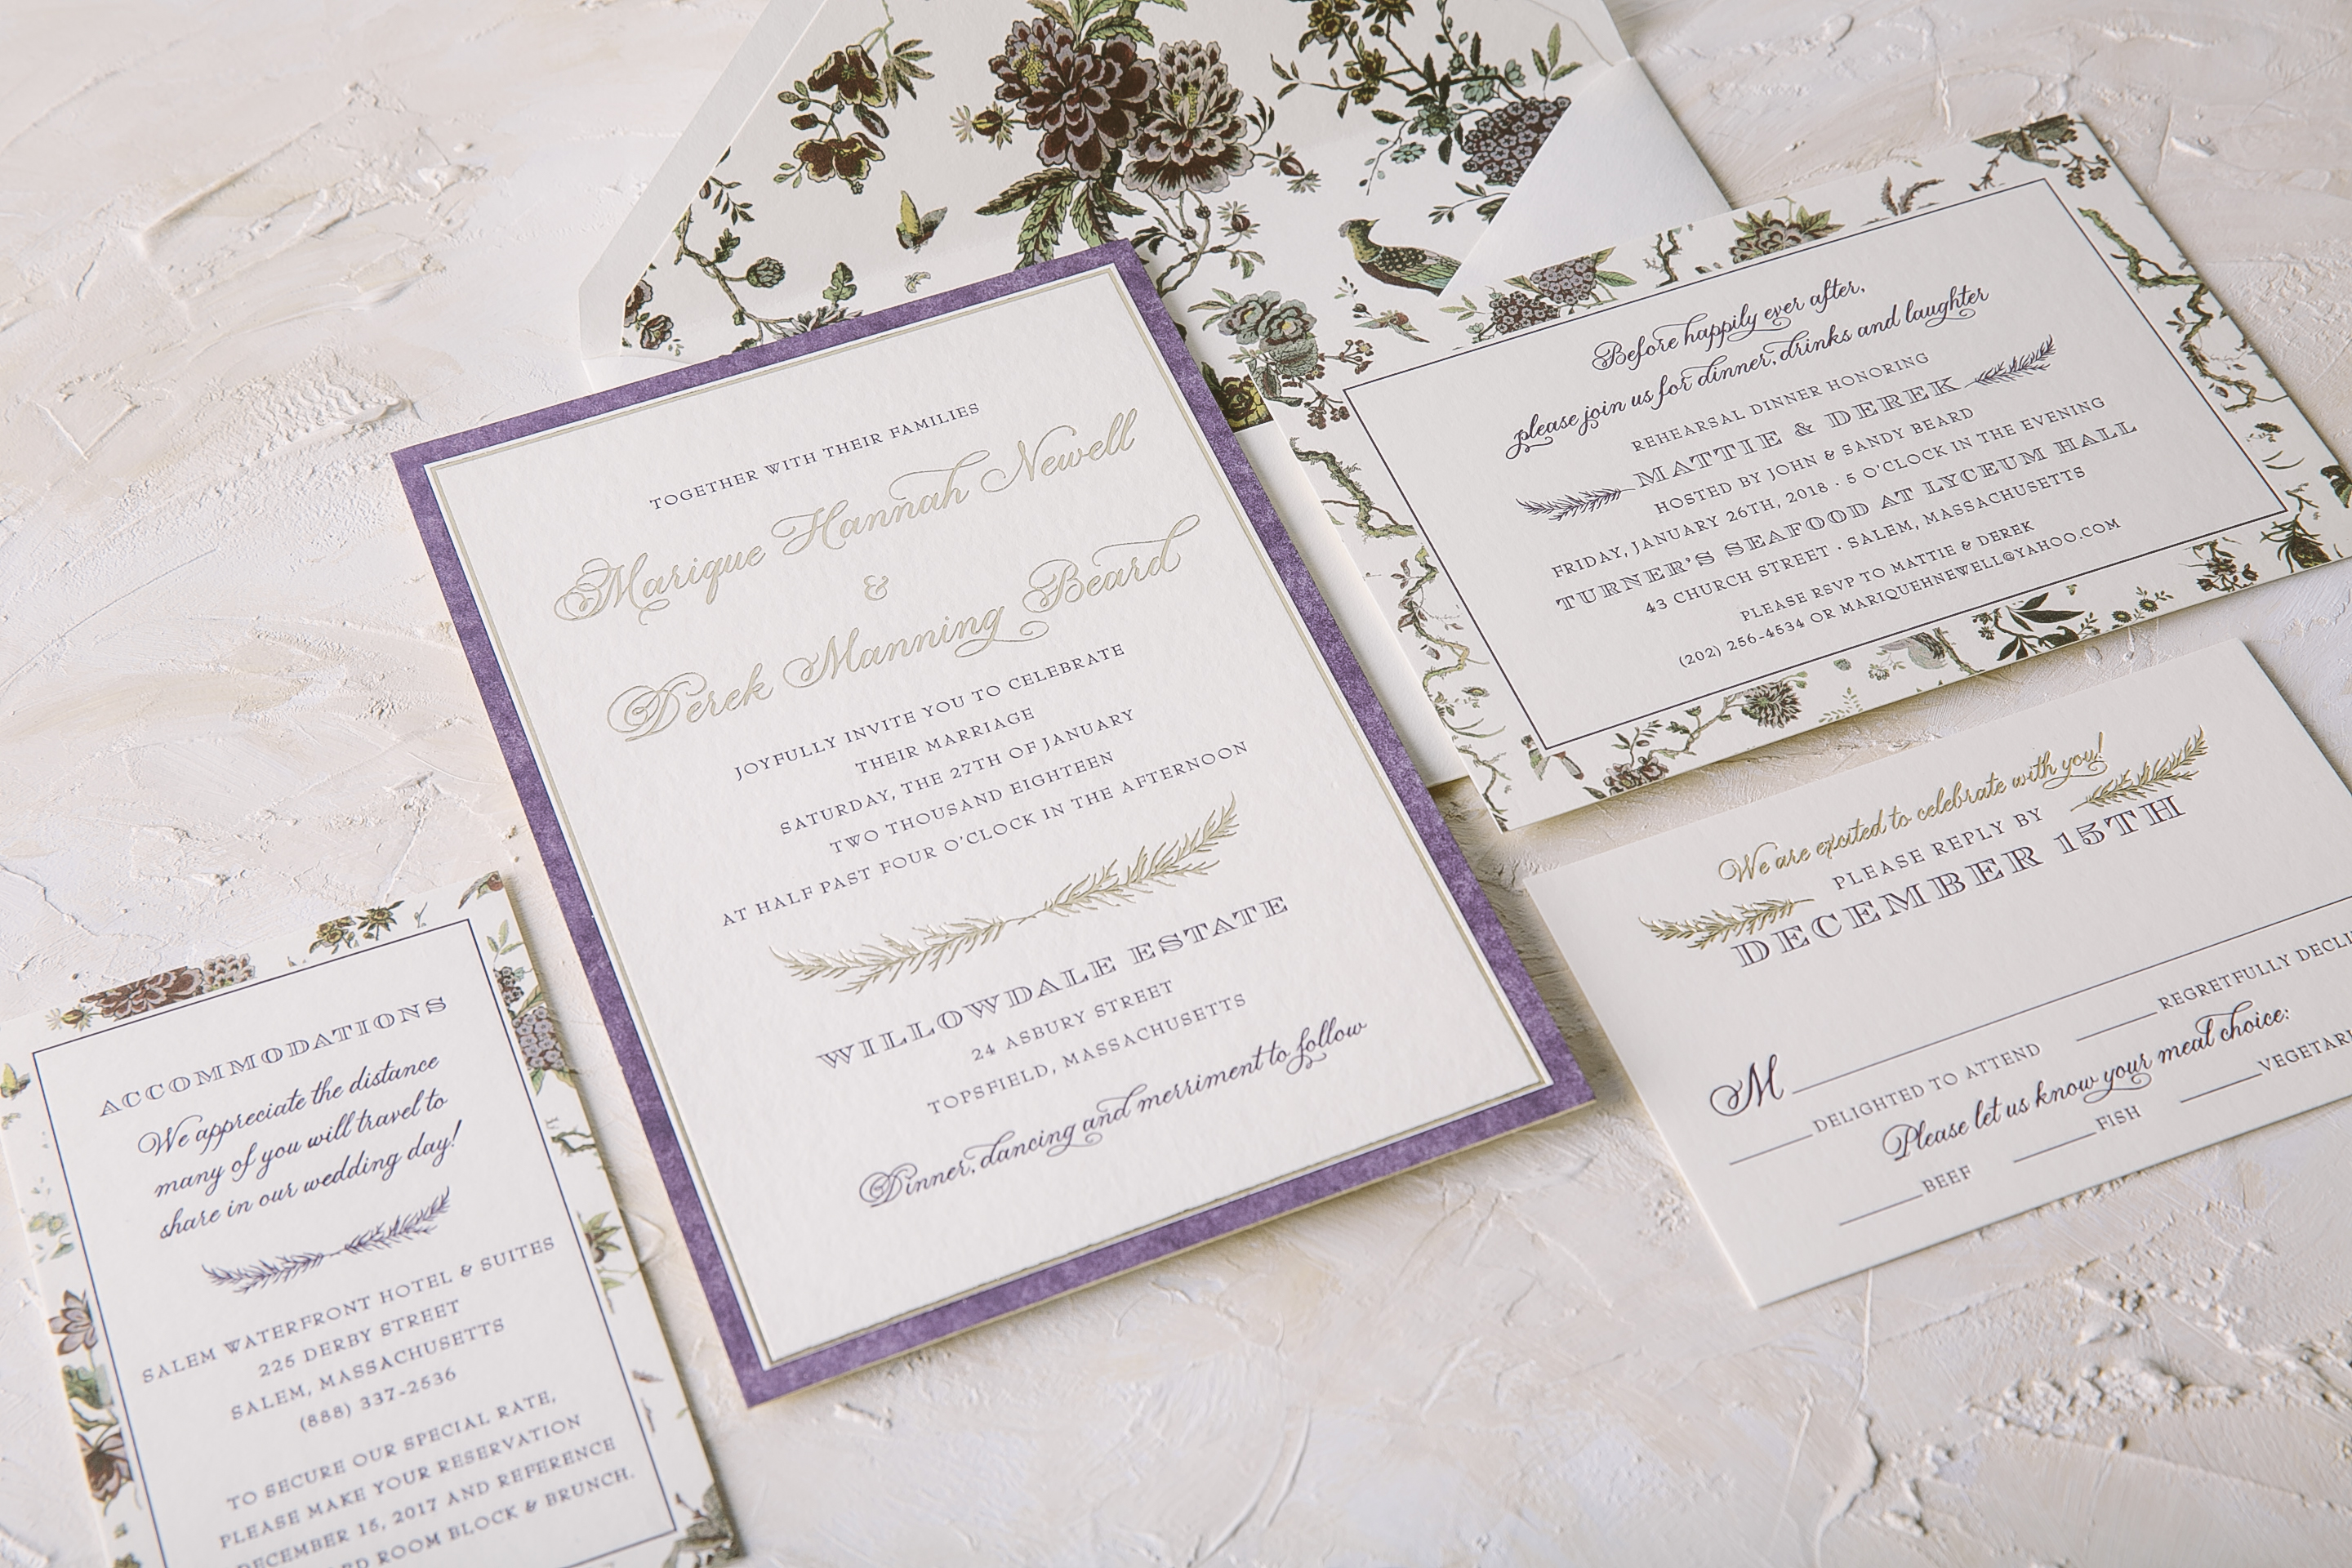 Foil stamped wedding invitations with botanical accents from Smock